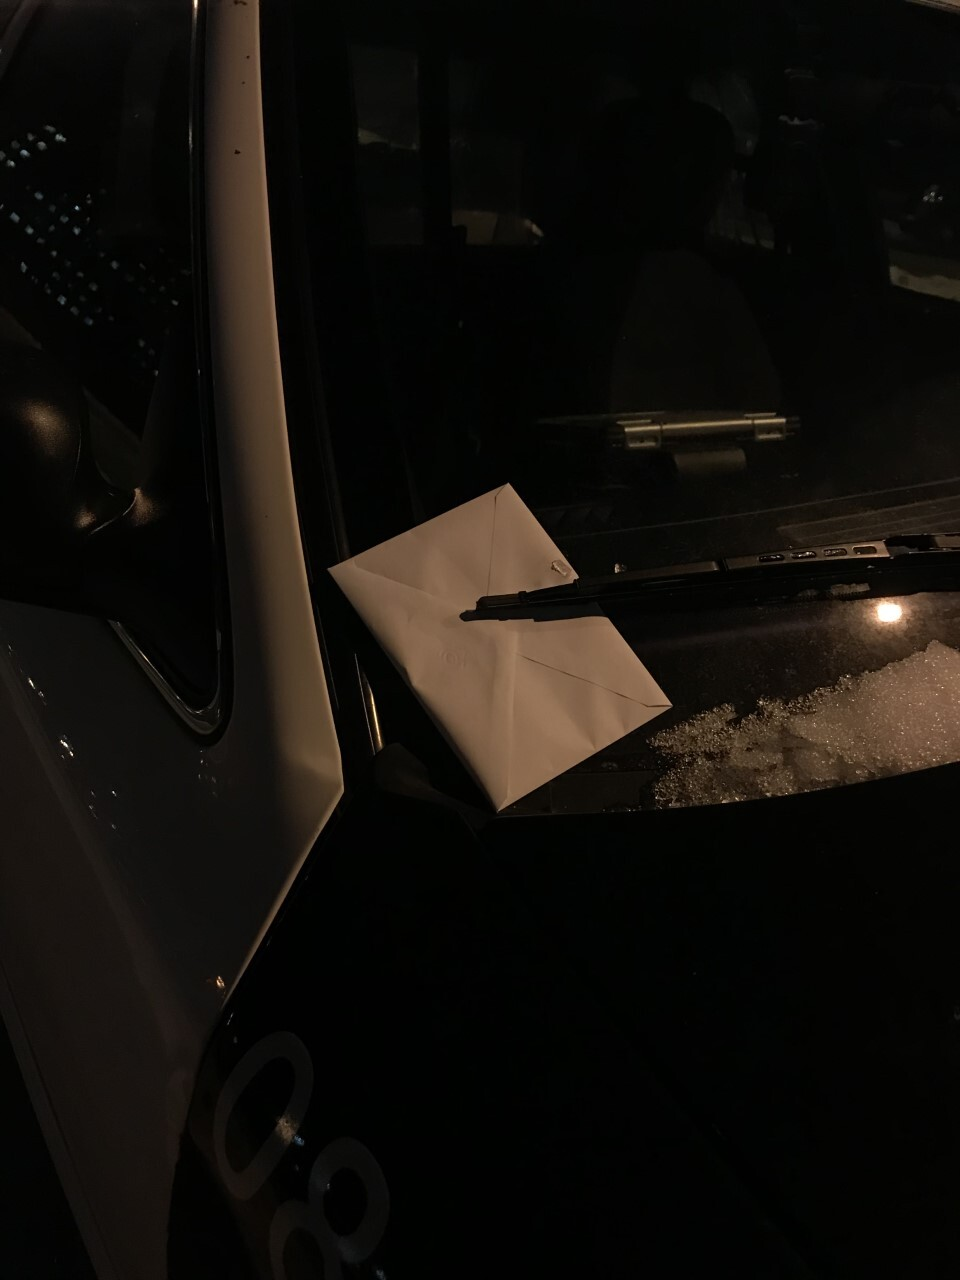 After the procession, someone left cards on each squad car outside the Police Administration Building Wednesday evening.